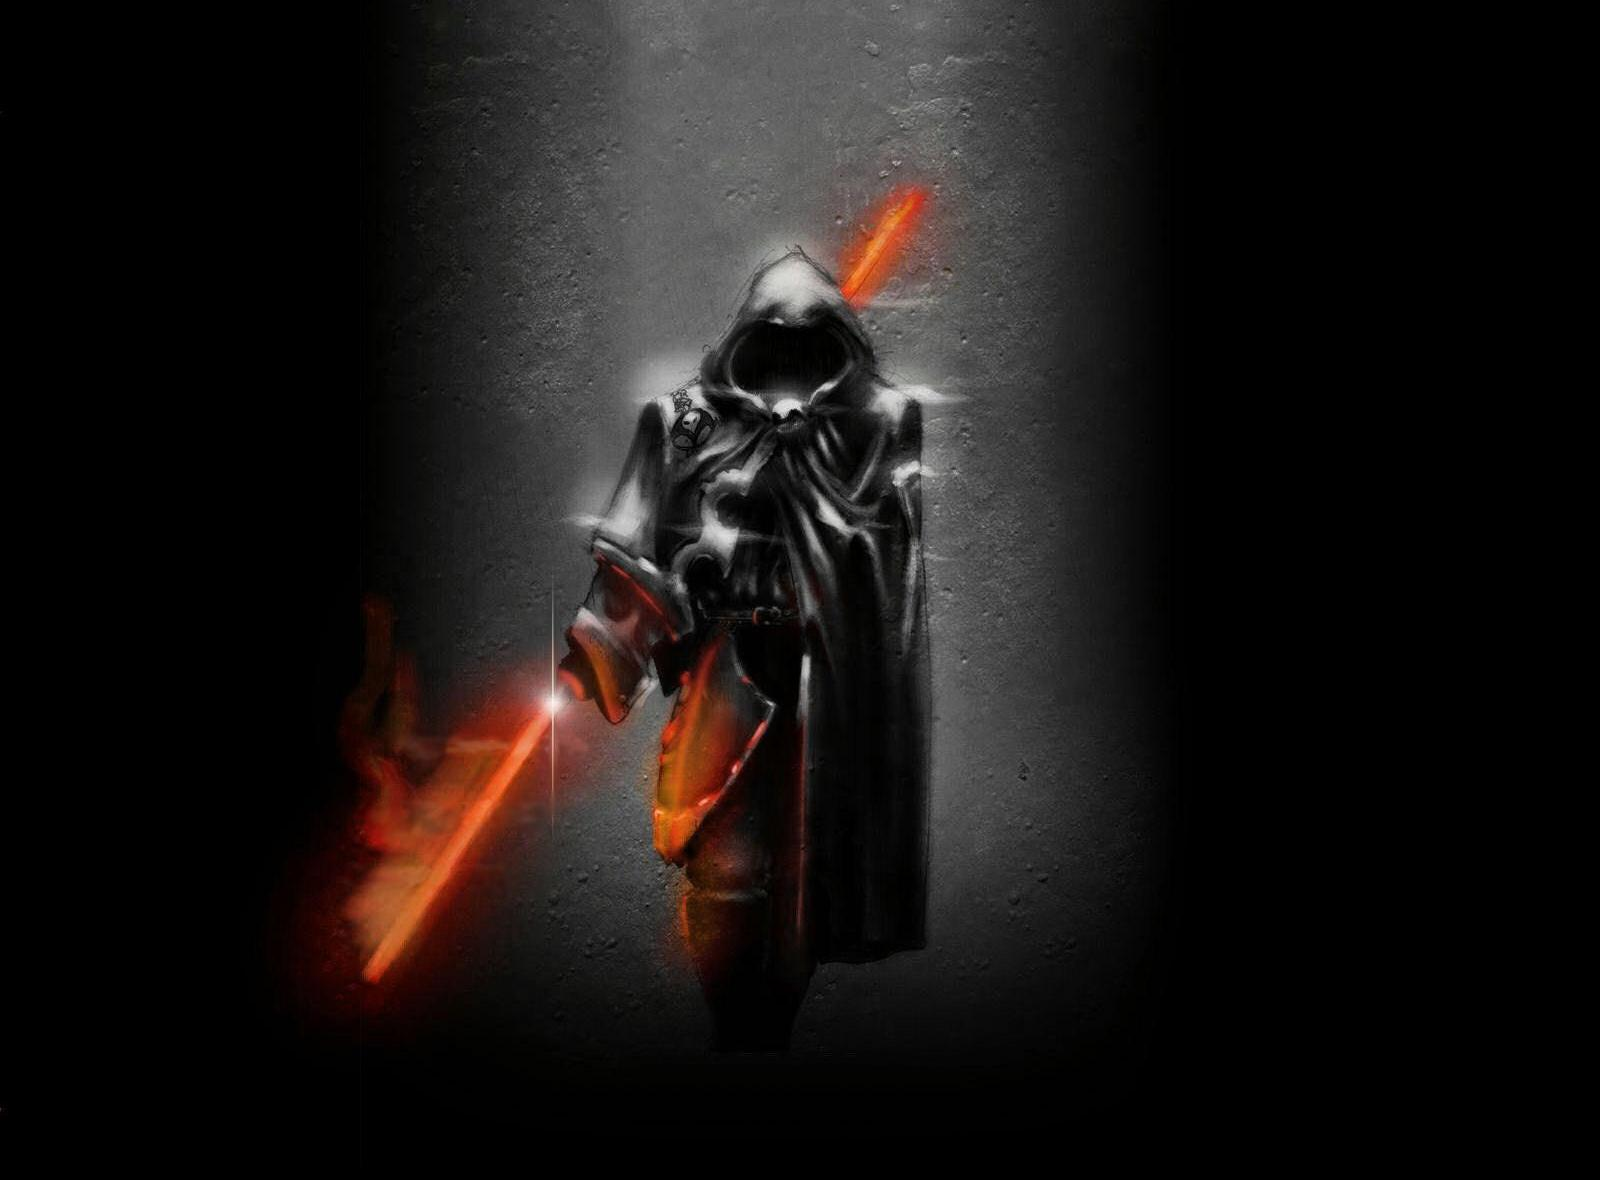 481 Star Wars Wallpapers | Star Wars Backgrounds Page 2